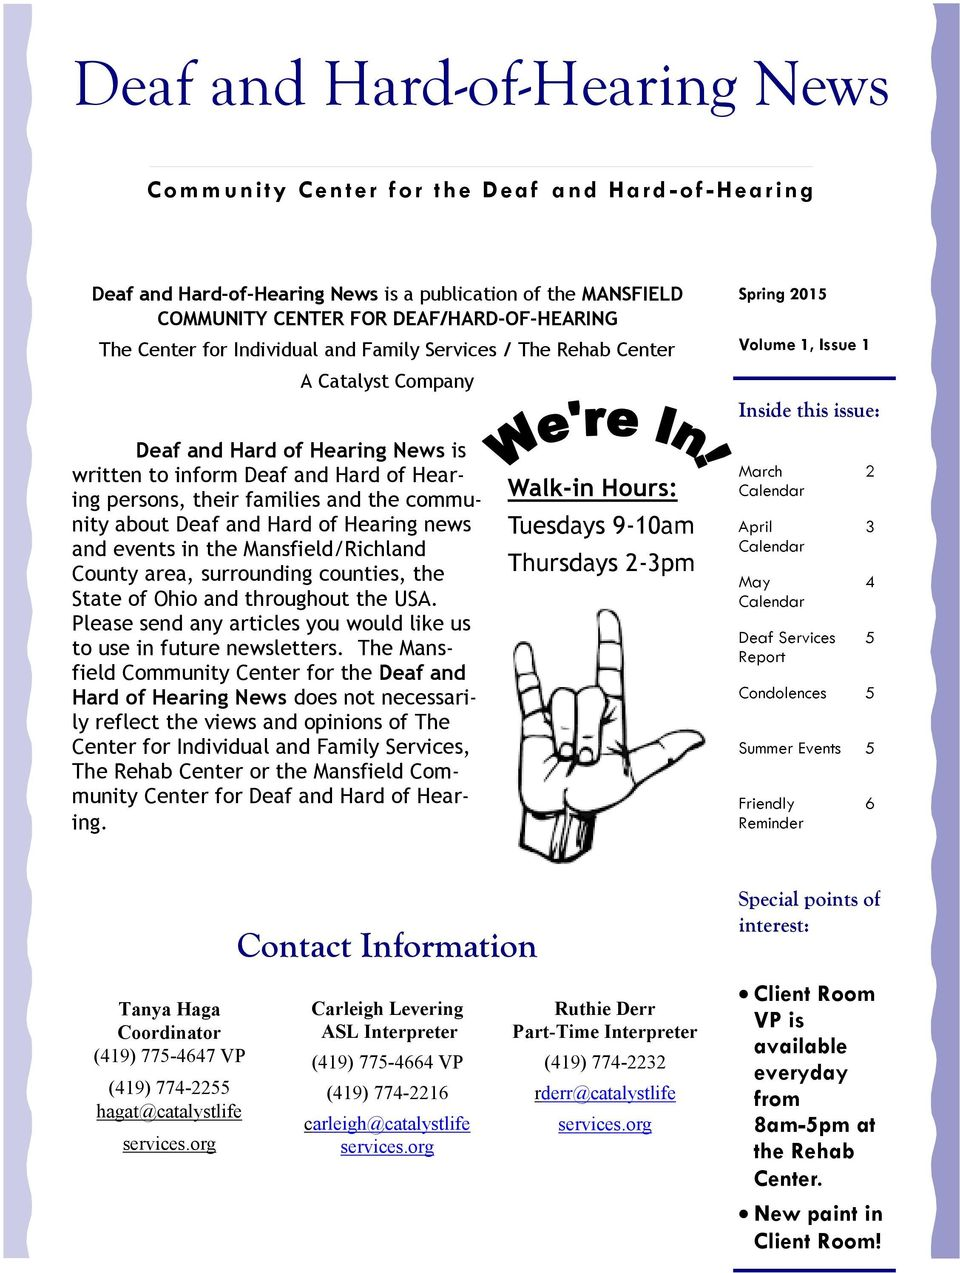 families and the community about Deaf and Hard of Hearing news and events in the Mansfield/Richland County area, surrounding counties, the State of Ohio and throughout the USA.